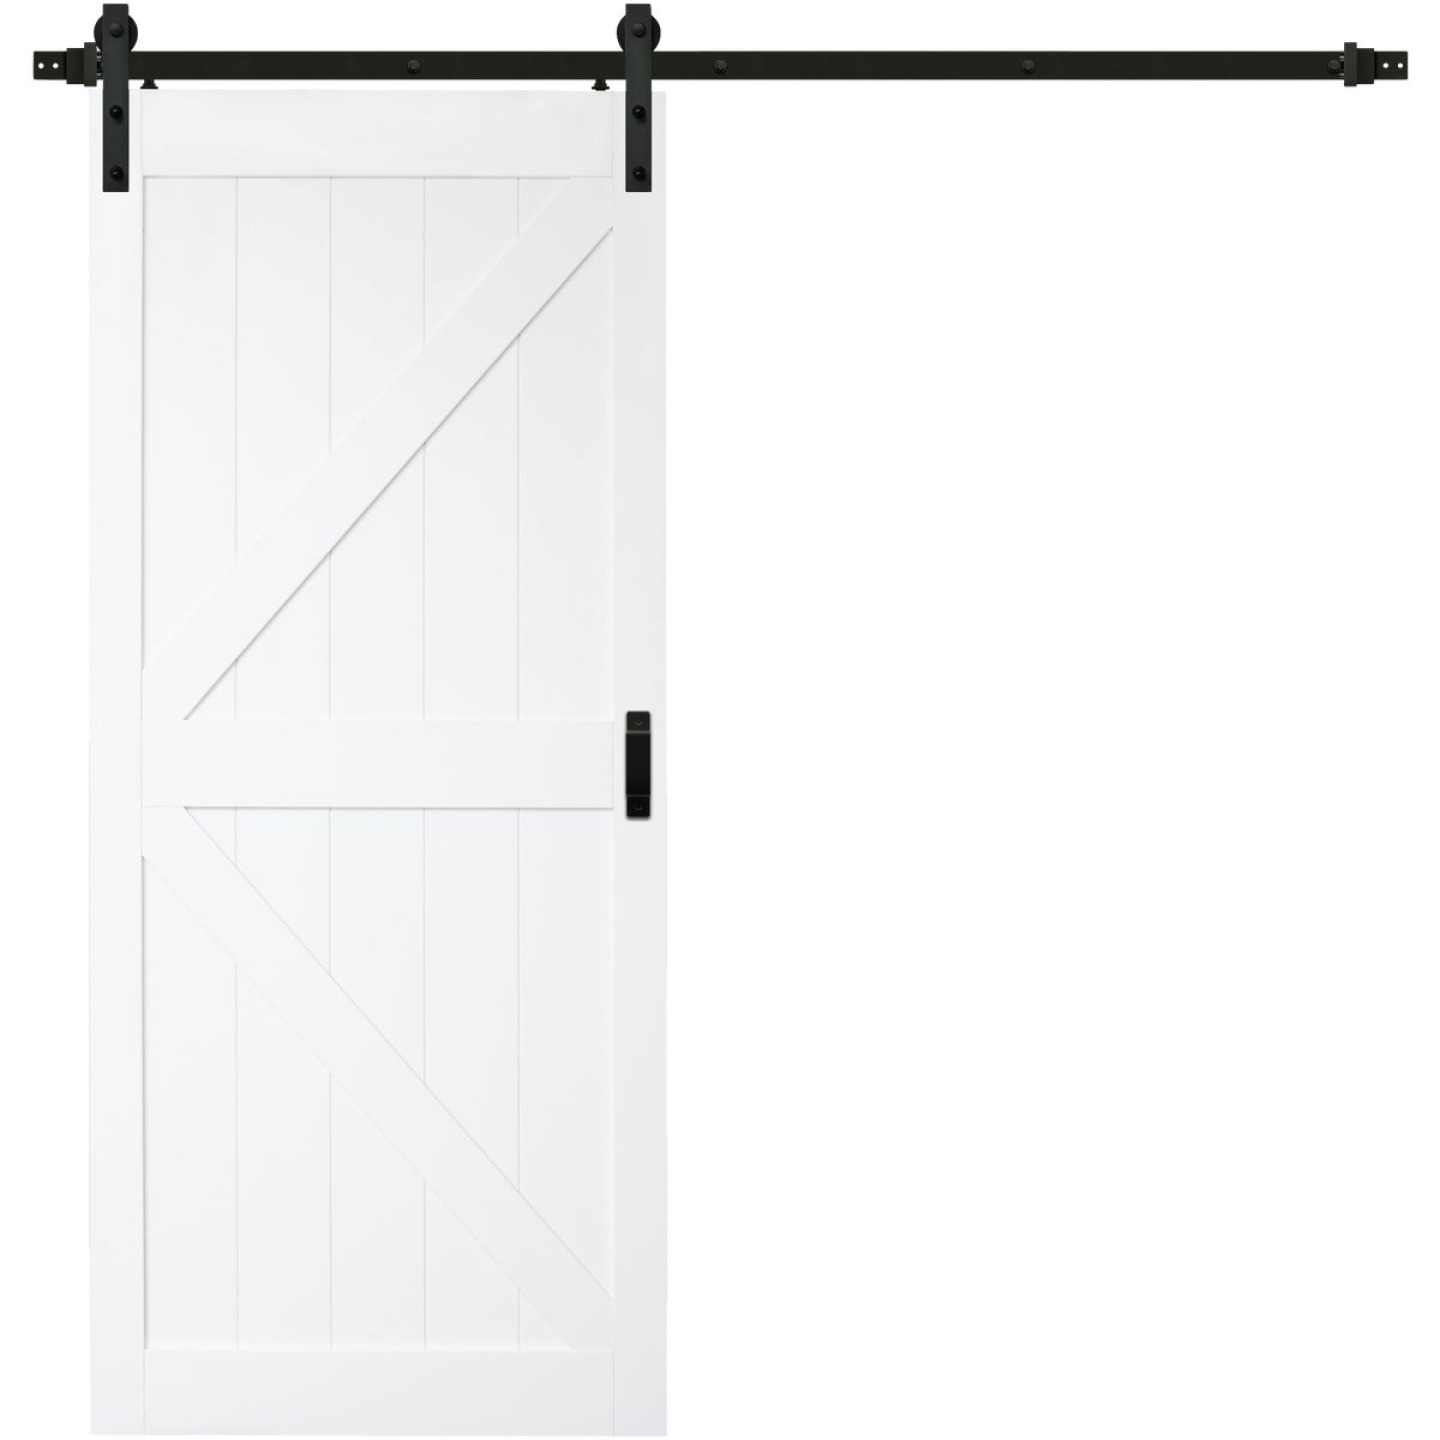 Renin Stone 36 In. W x 84 In. H Easy-Build K-Style White Textured Wood Barn Door Image 1